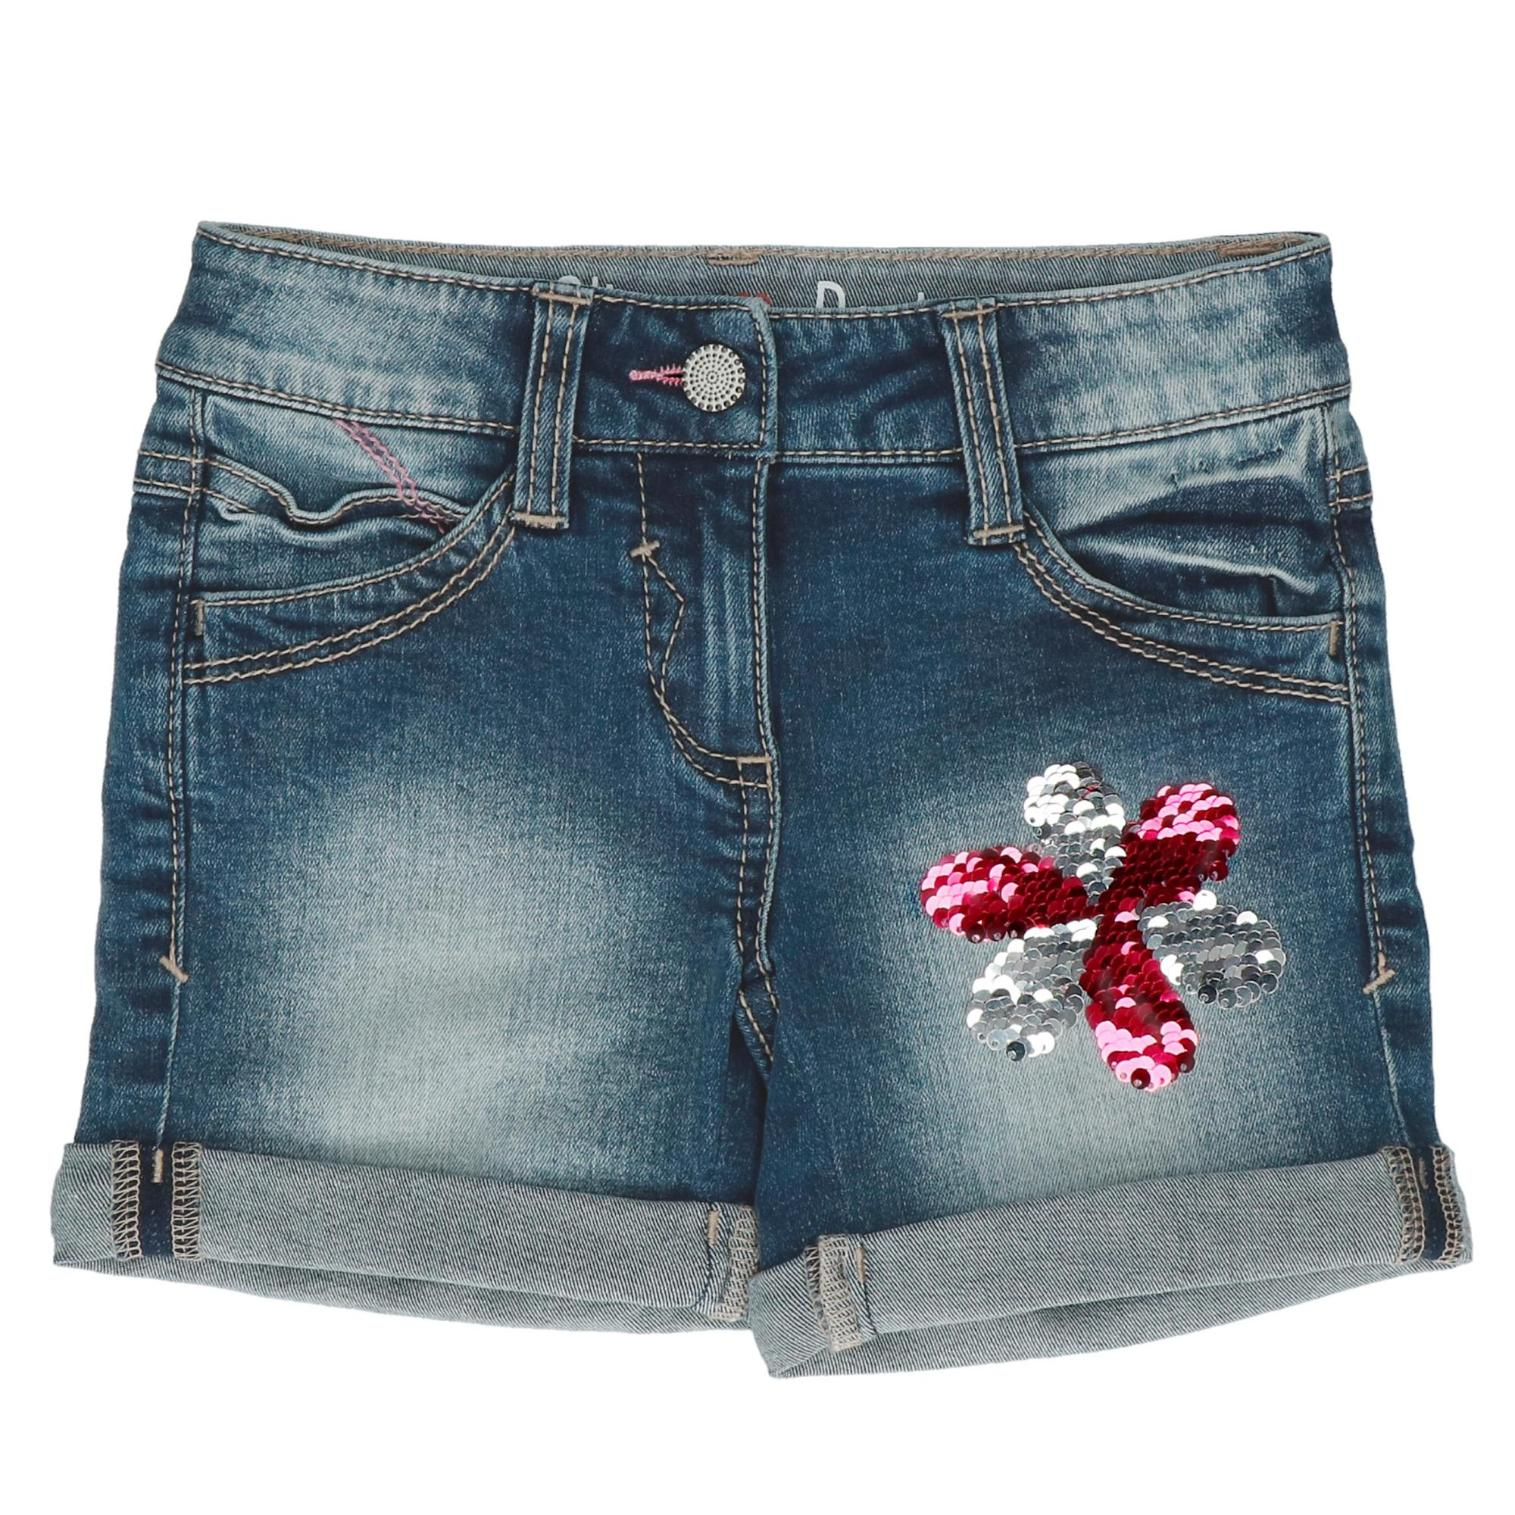 868e92d51b35f s.Oliver Jeansshorts